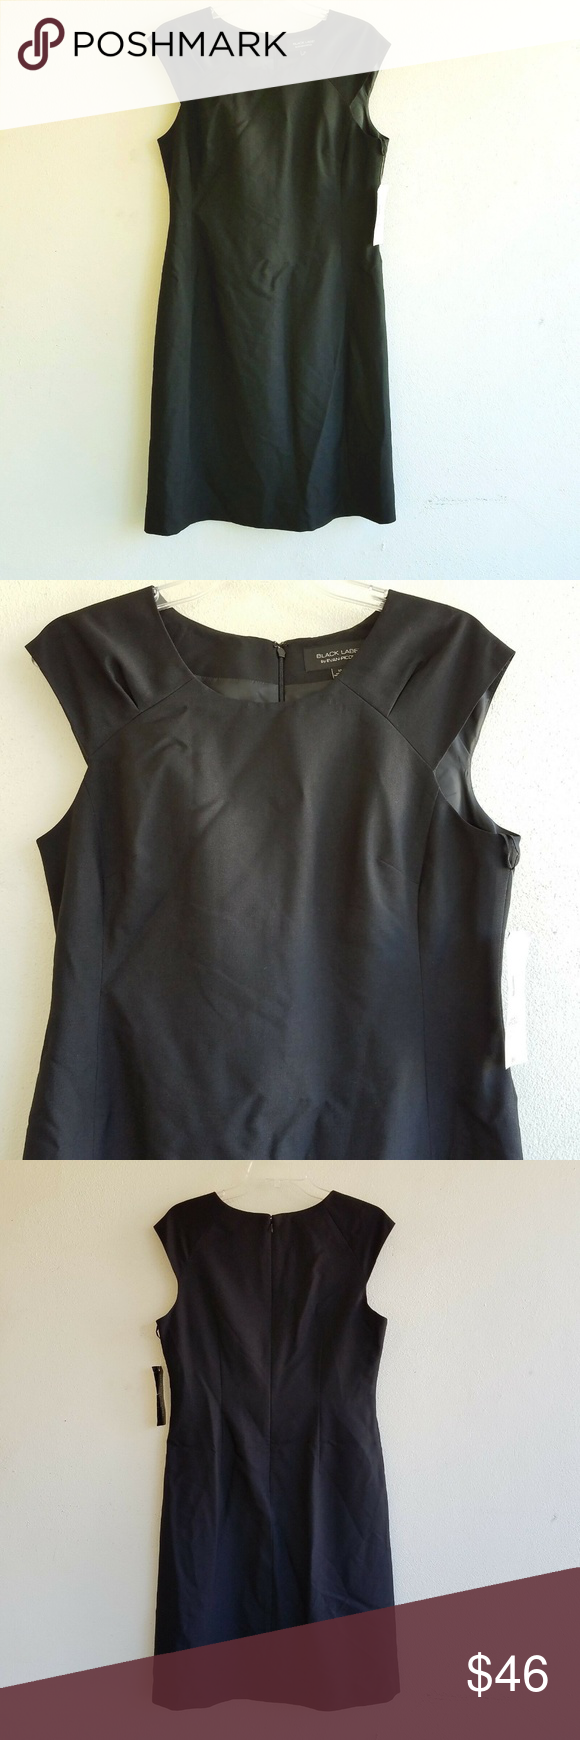 9f9503f556e Black Label by Evan Picone Dress Size 10 Black Label by Evan Picone Dress  Size 10 NWT Retails  60 Woman s Size 10 Black Sleeveless Dress Lined